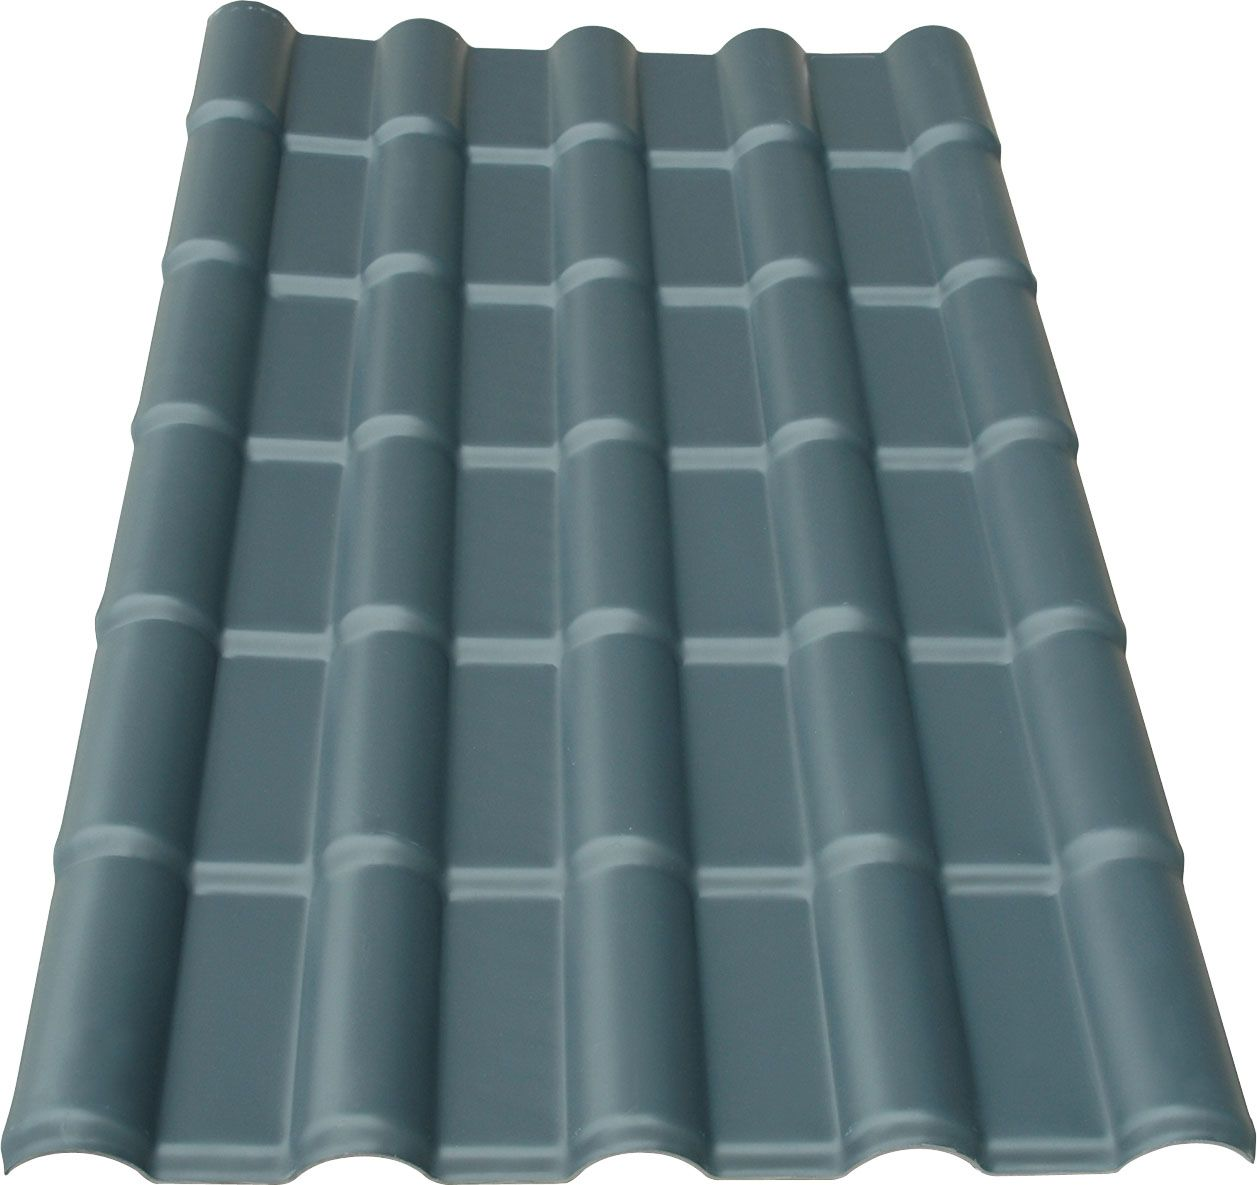 Plastic Roof Tiles 2019